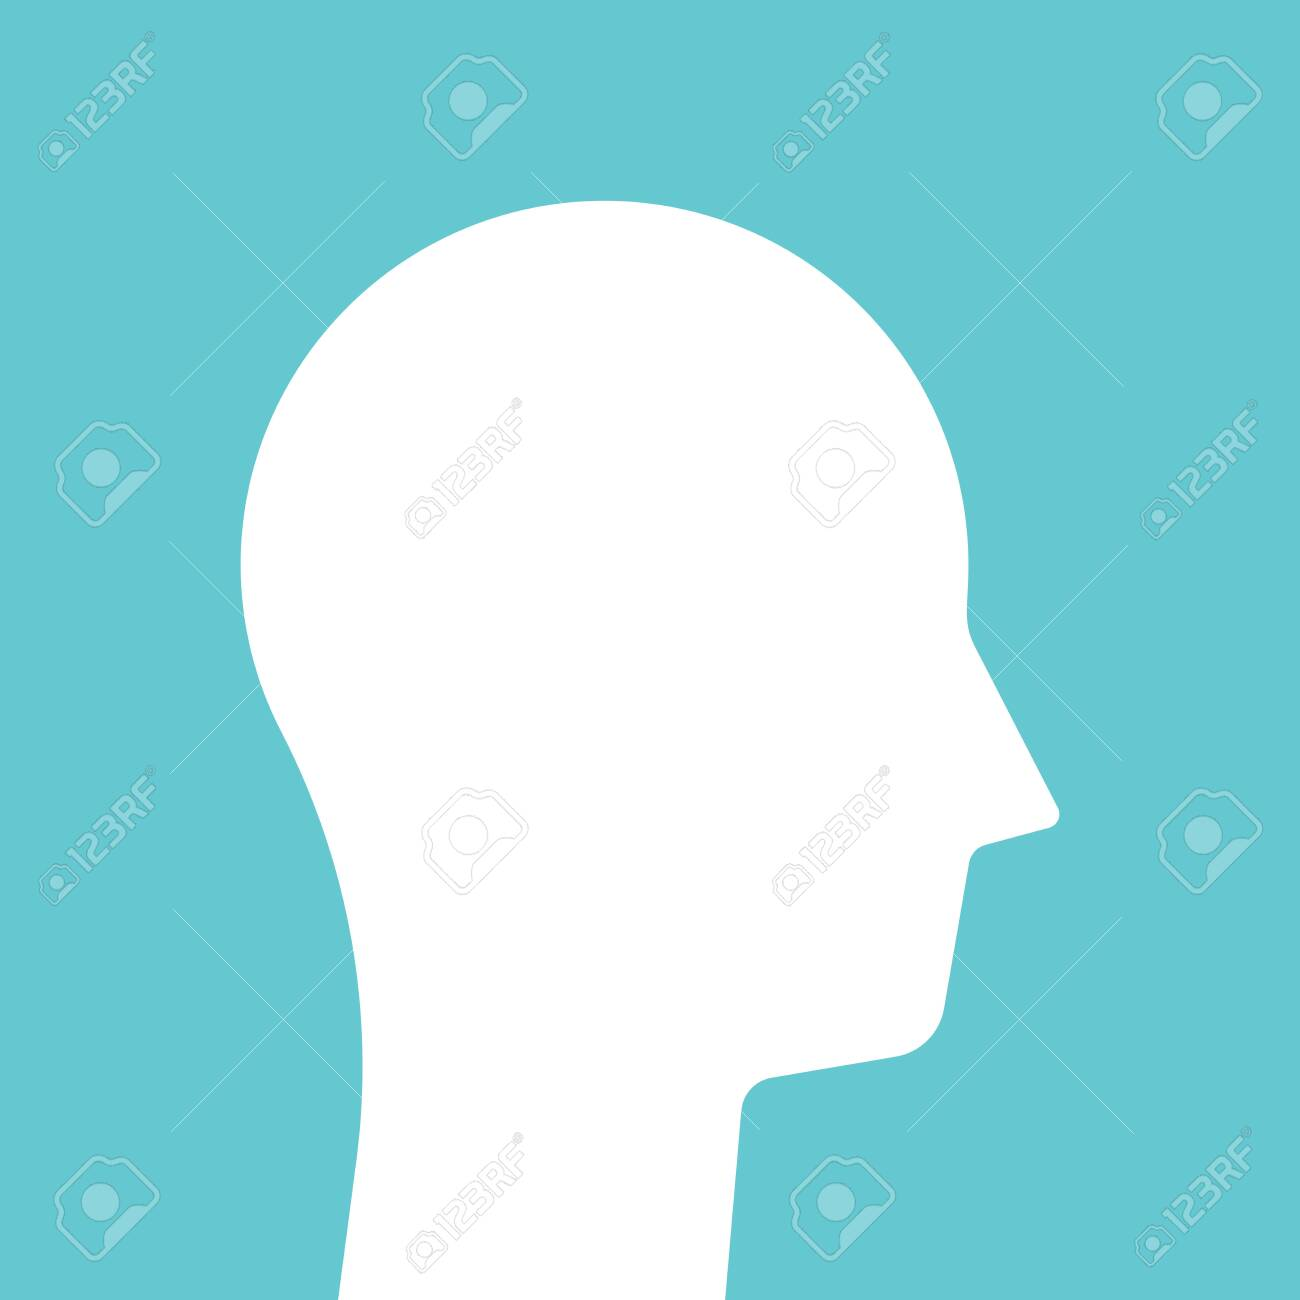 Male head on turquoise blue. White abstract simple geometric silhouette. Person, mind, intelligence, psychology, therapy concept. Flat design. EPS 8 vector illustration, no transparency, no gradients - 135302695